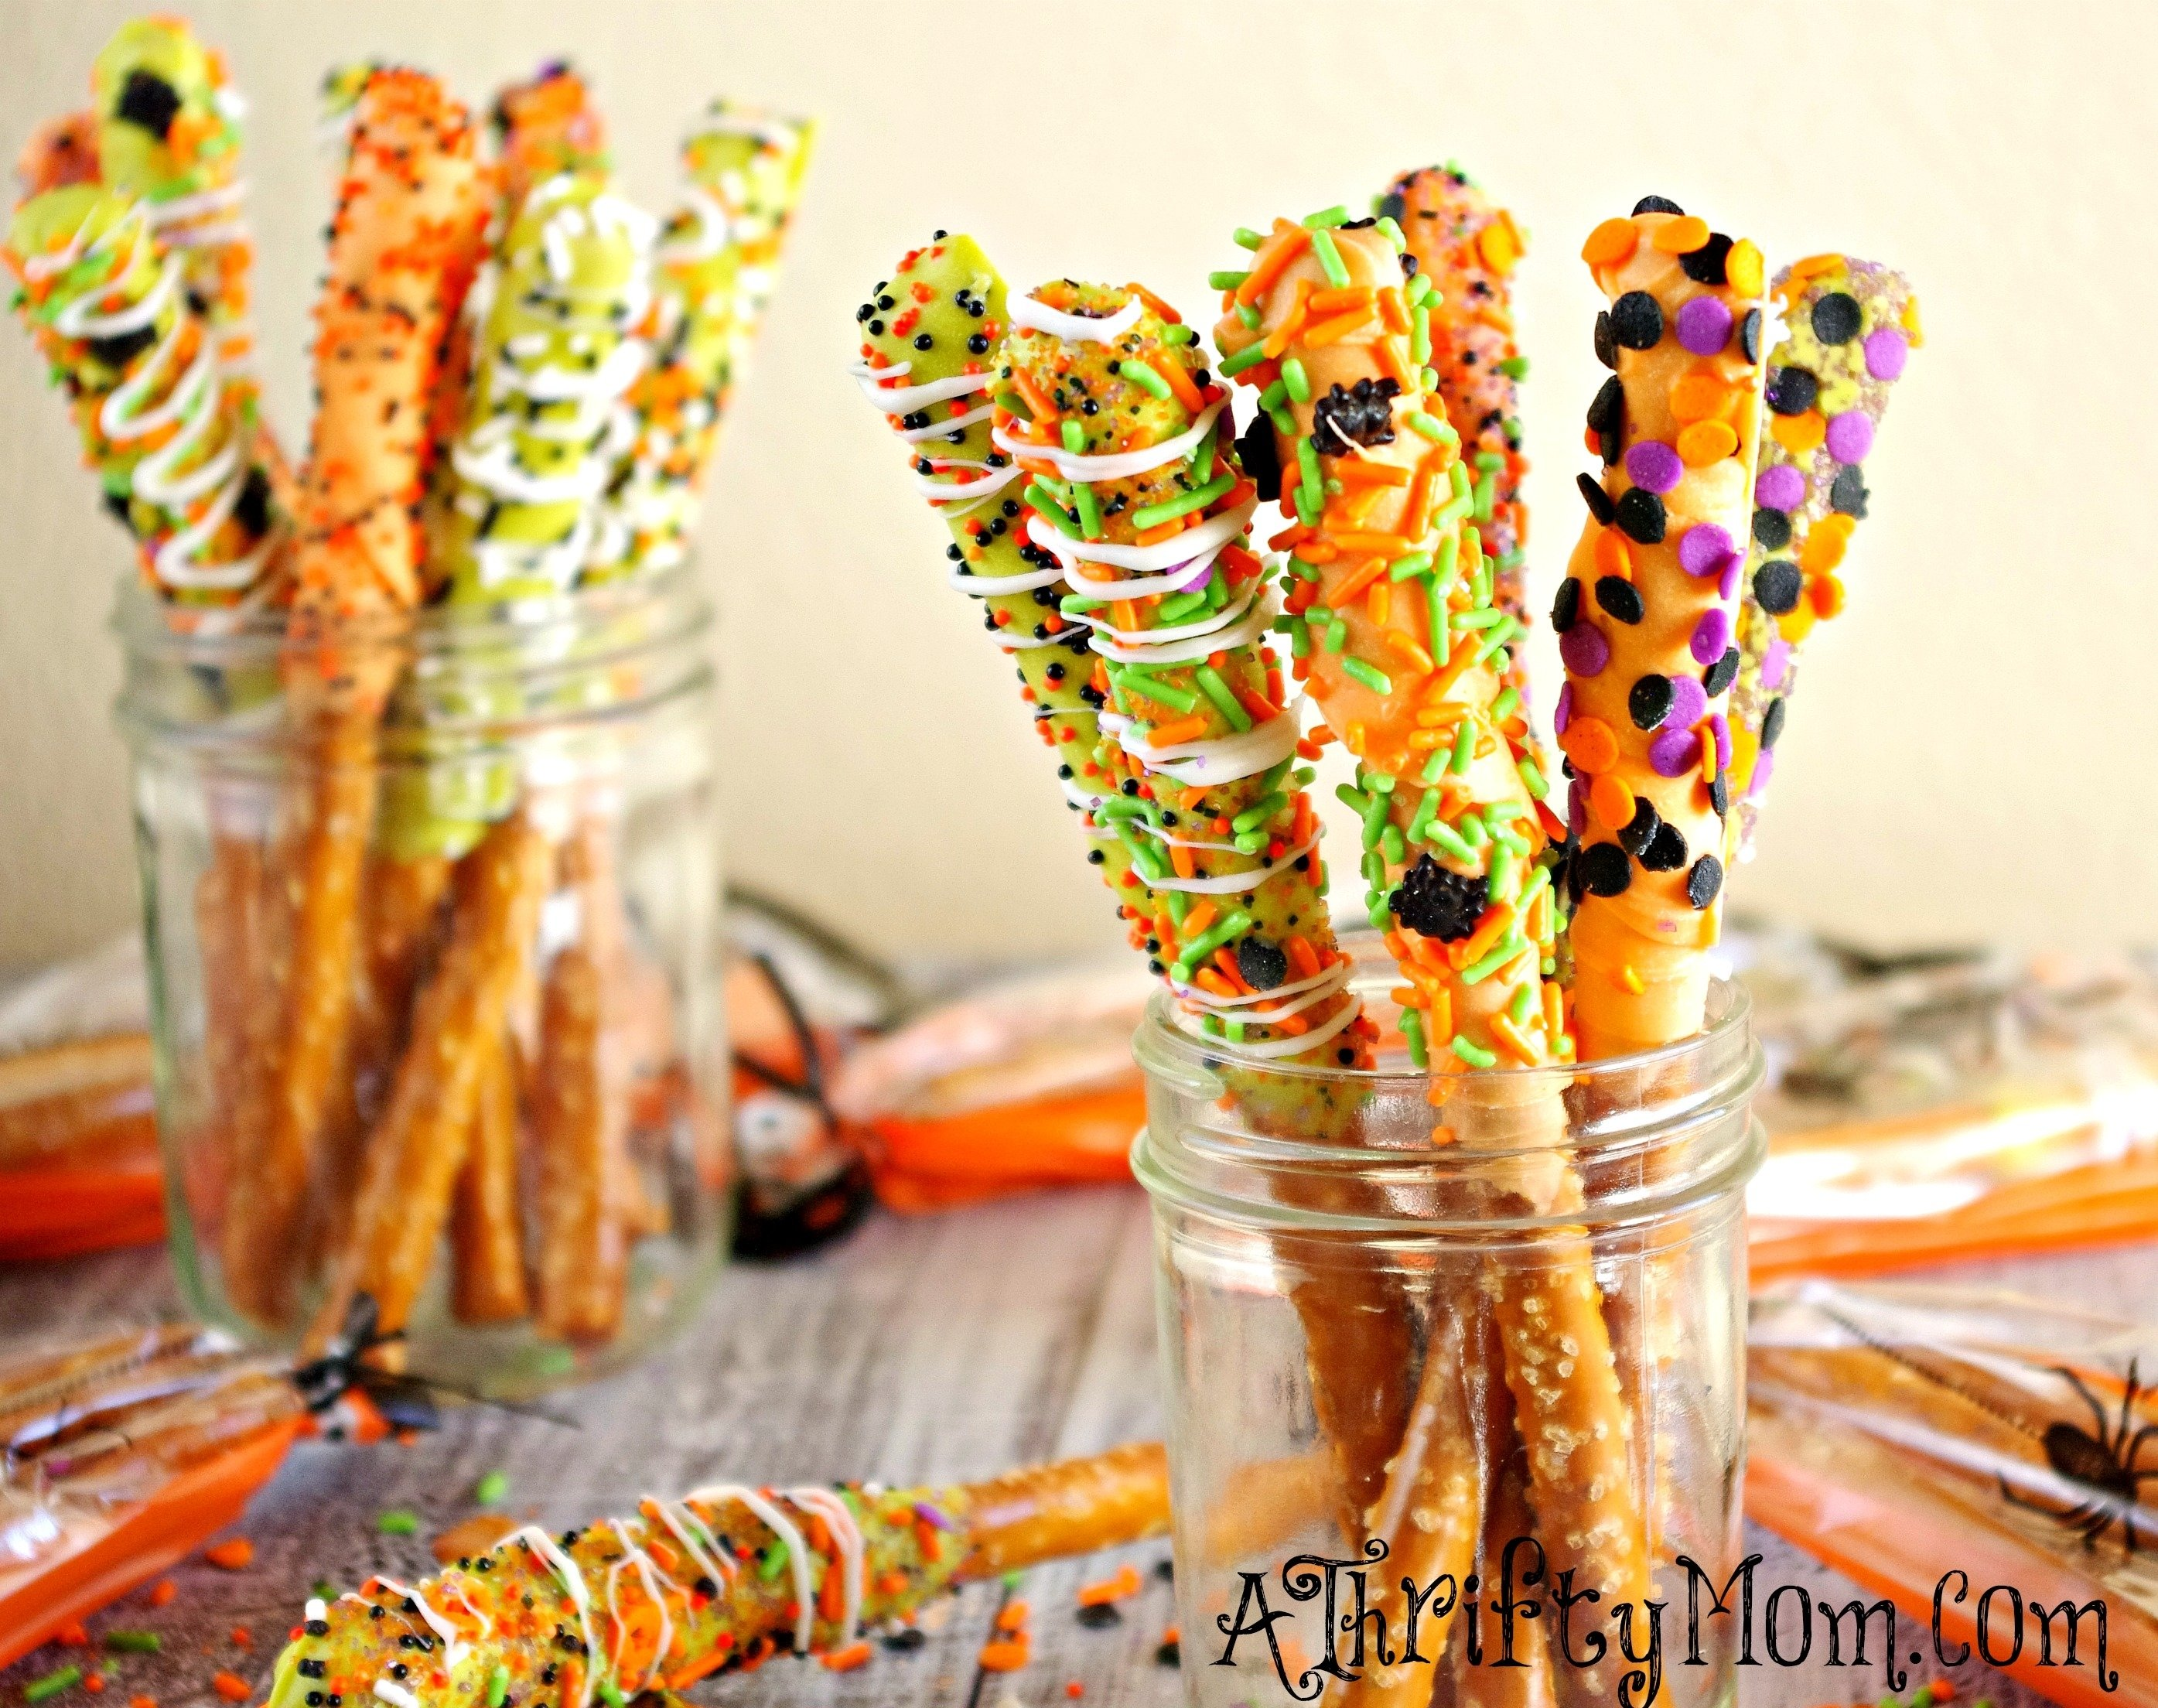 10 Stylish Halloween Food Ideas For Kids Party halloween party ideas archives a thrifty mom recipes crafts 1 2020